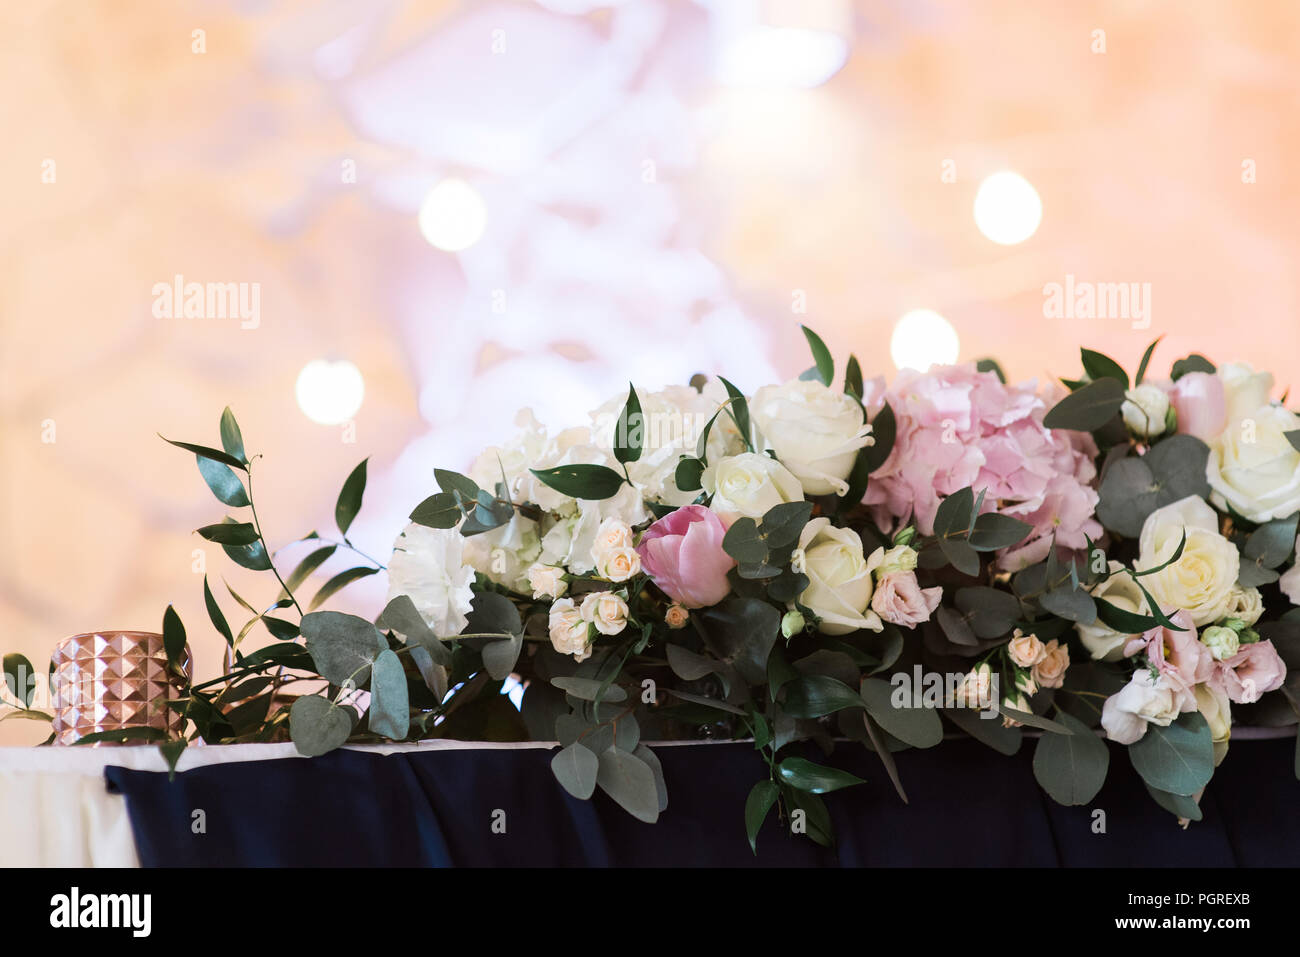 Beautiful Flowers In A Golden Vase On A White Table Stock Photo